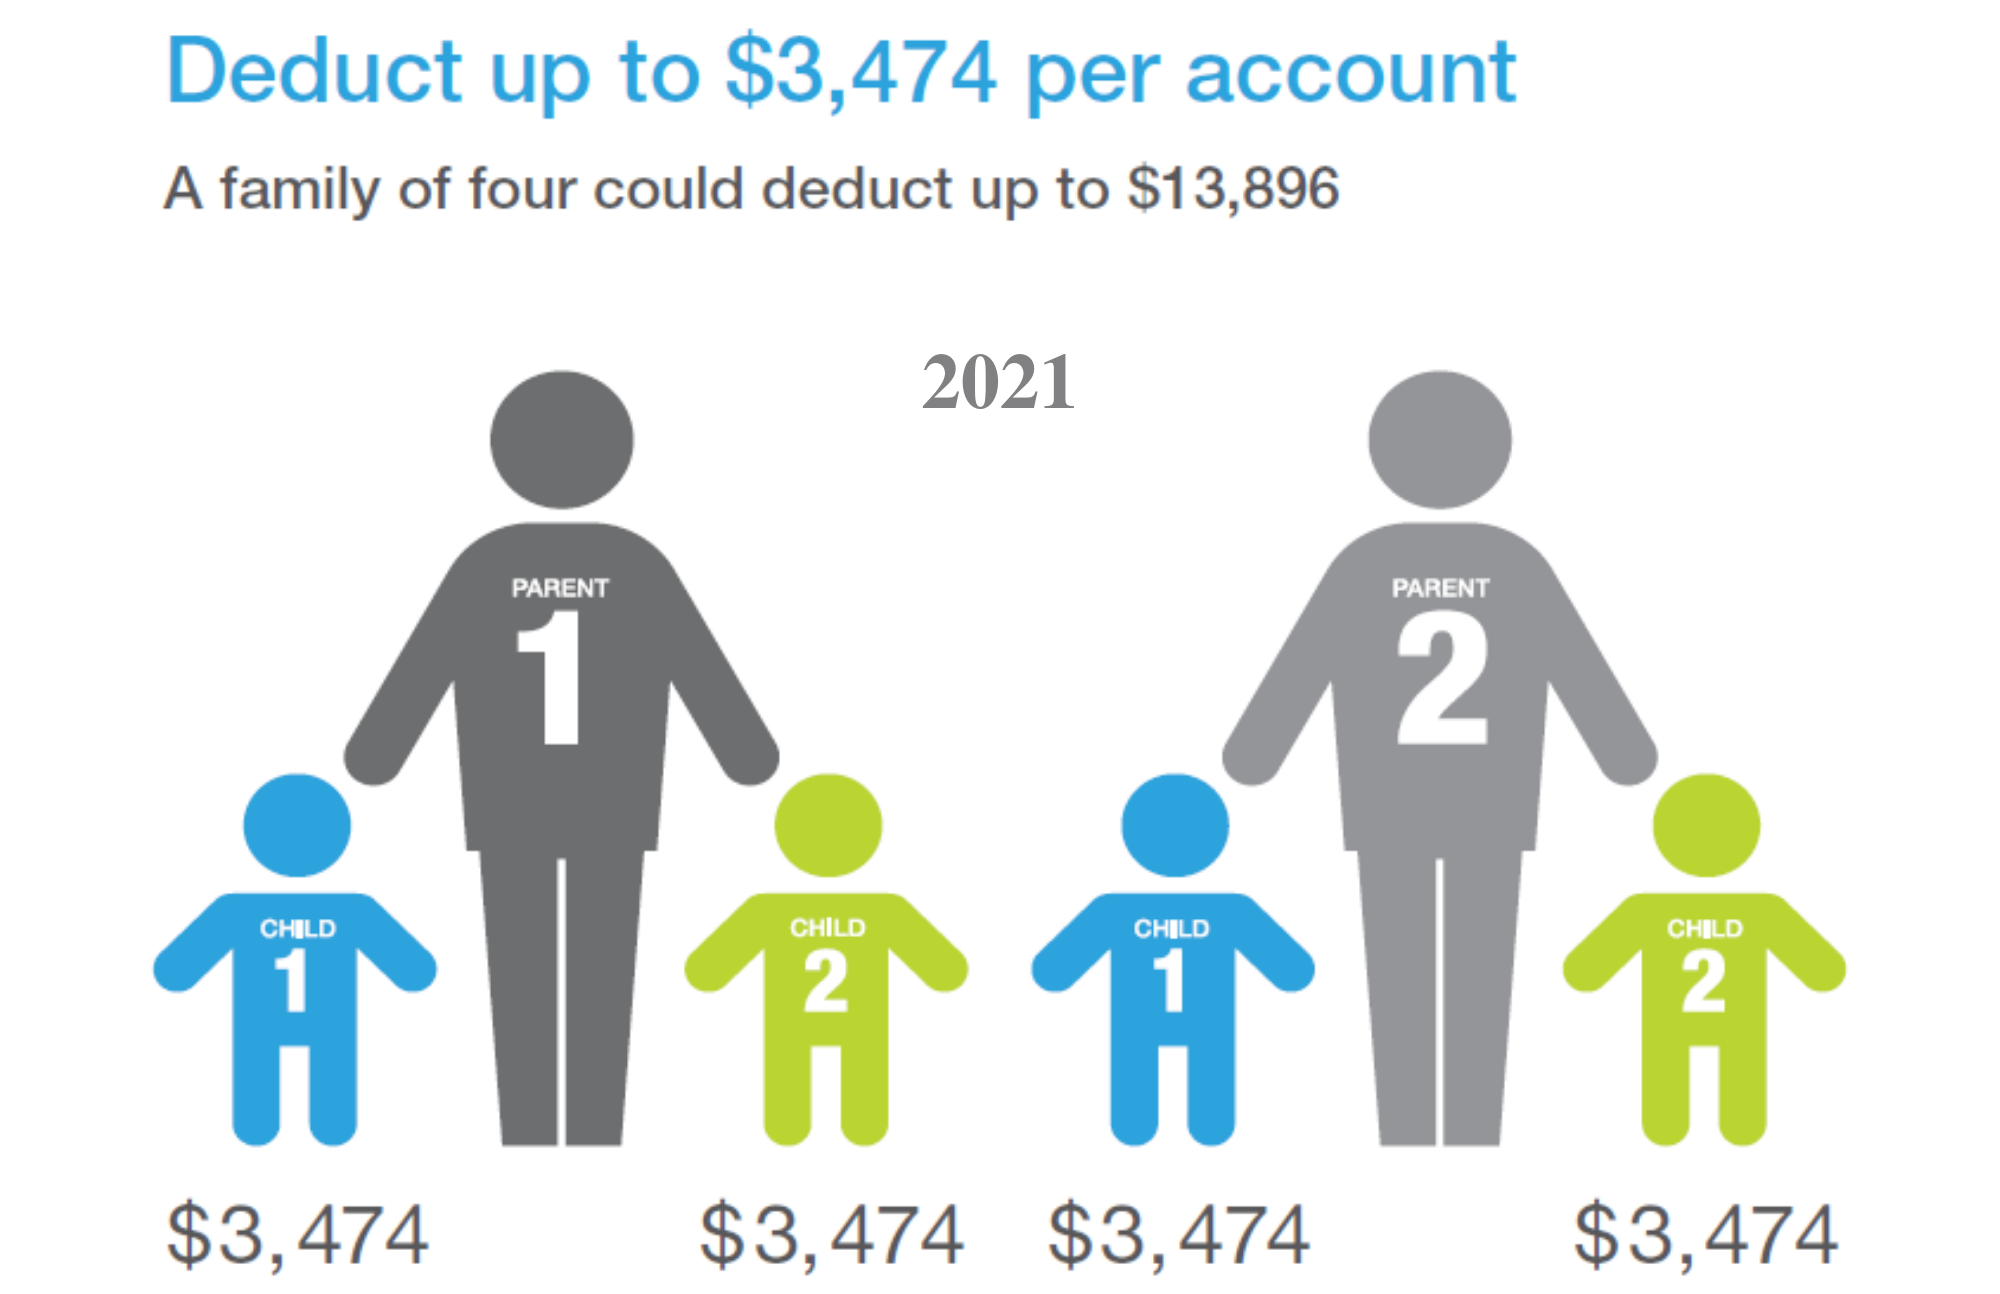 Deduct up to $3,474 per account. A family of four could deduct up to $13,896 in 2021.